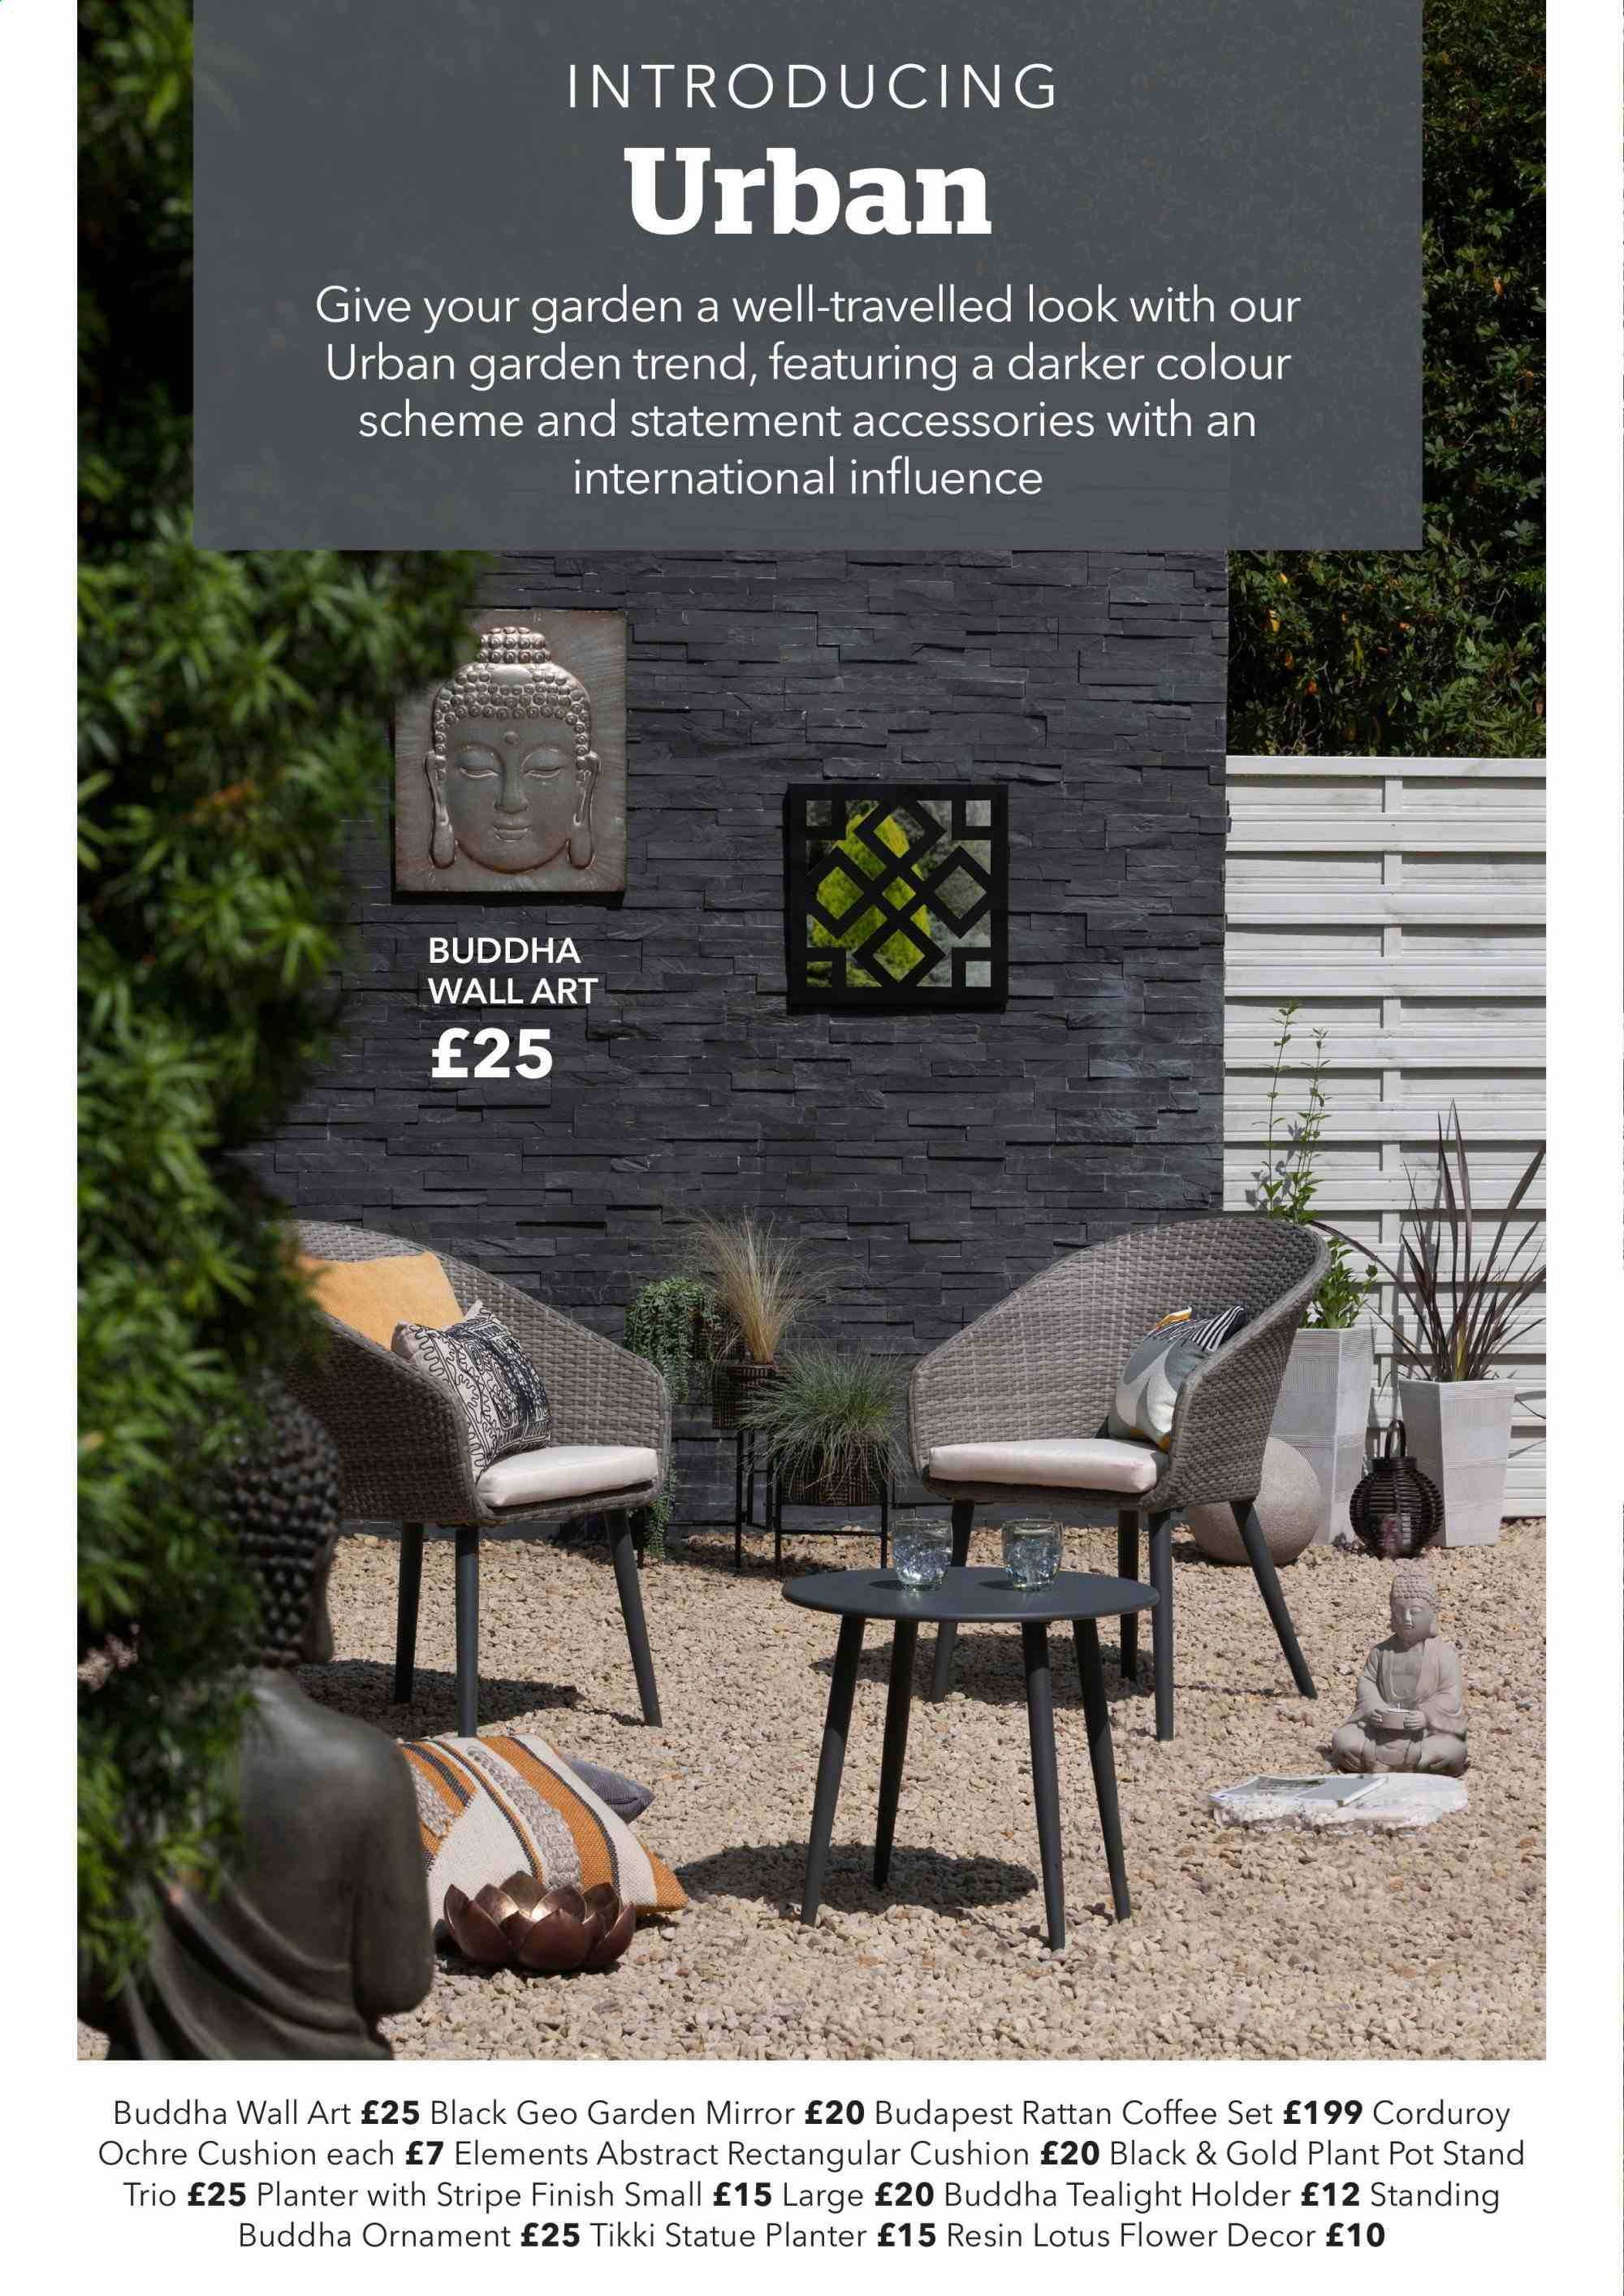 Dunelm offer  - Sales products - accessories, coffee, cushion, mirror, stand, holder, plant pot, pot, ornament. Page 12.